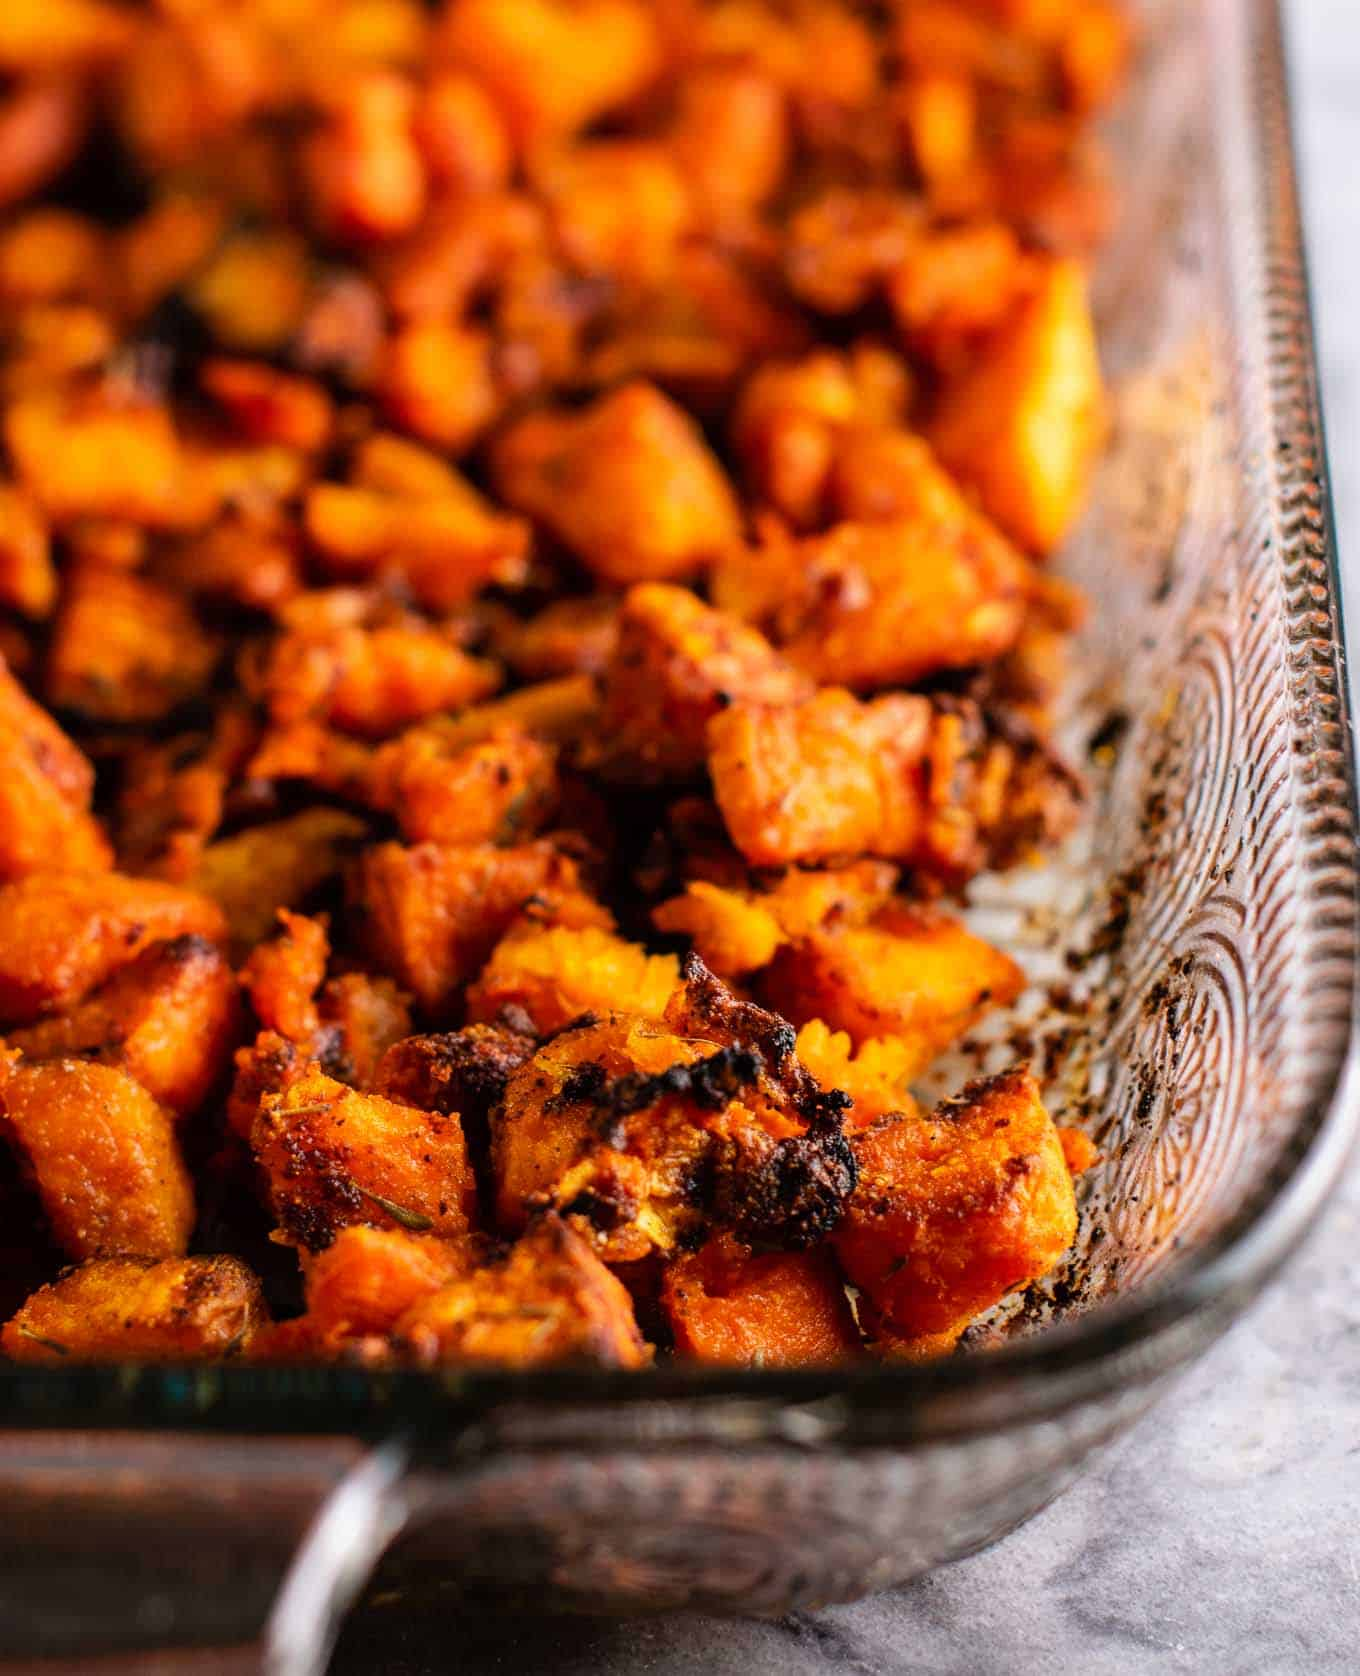 Sweet potato hash paleo recipe - with caramelized garlic and onion. So much flavor - this is perfect for breakfast! #sweetpotatohash #sweetpotato #veganbreakfast #vegan #breakfasthash #glutenfree #dairyfree #vegetarian